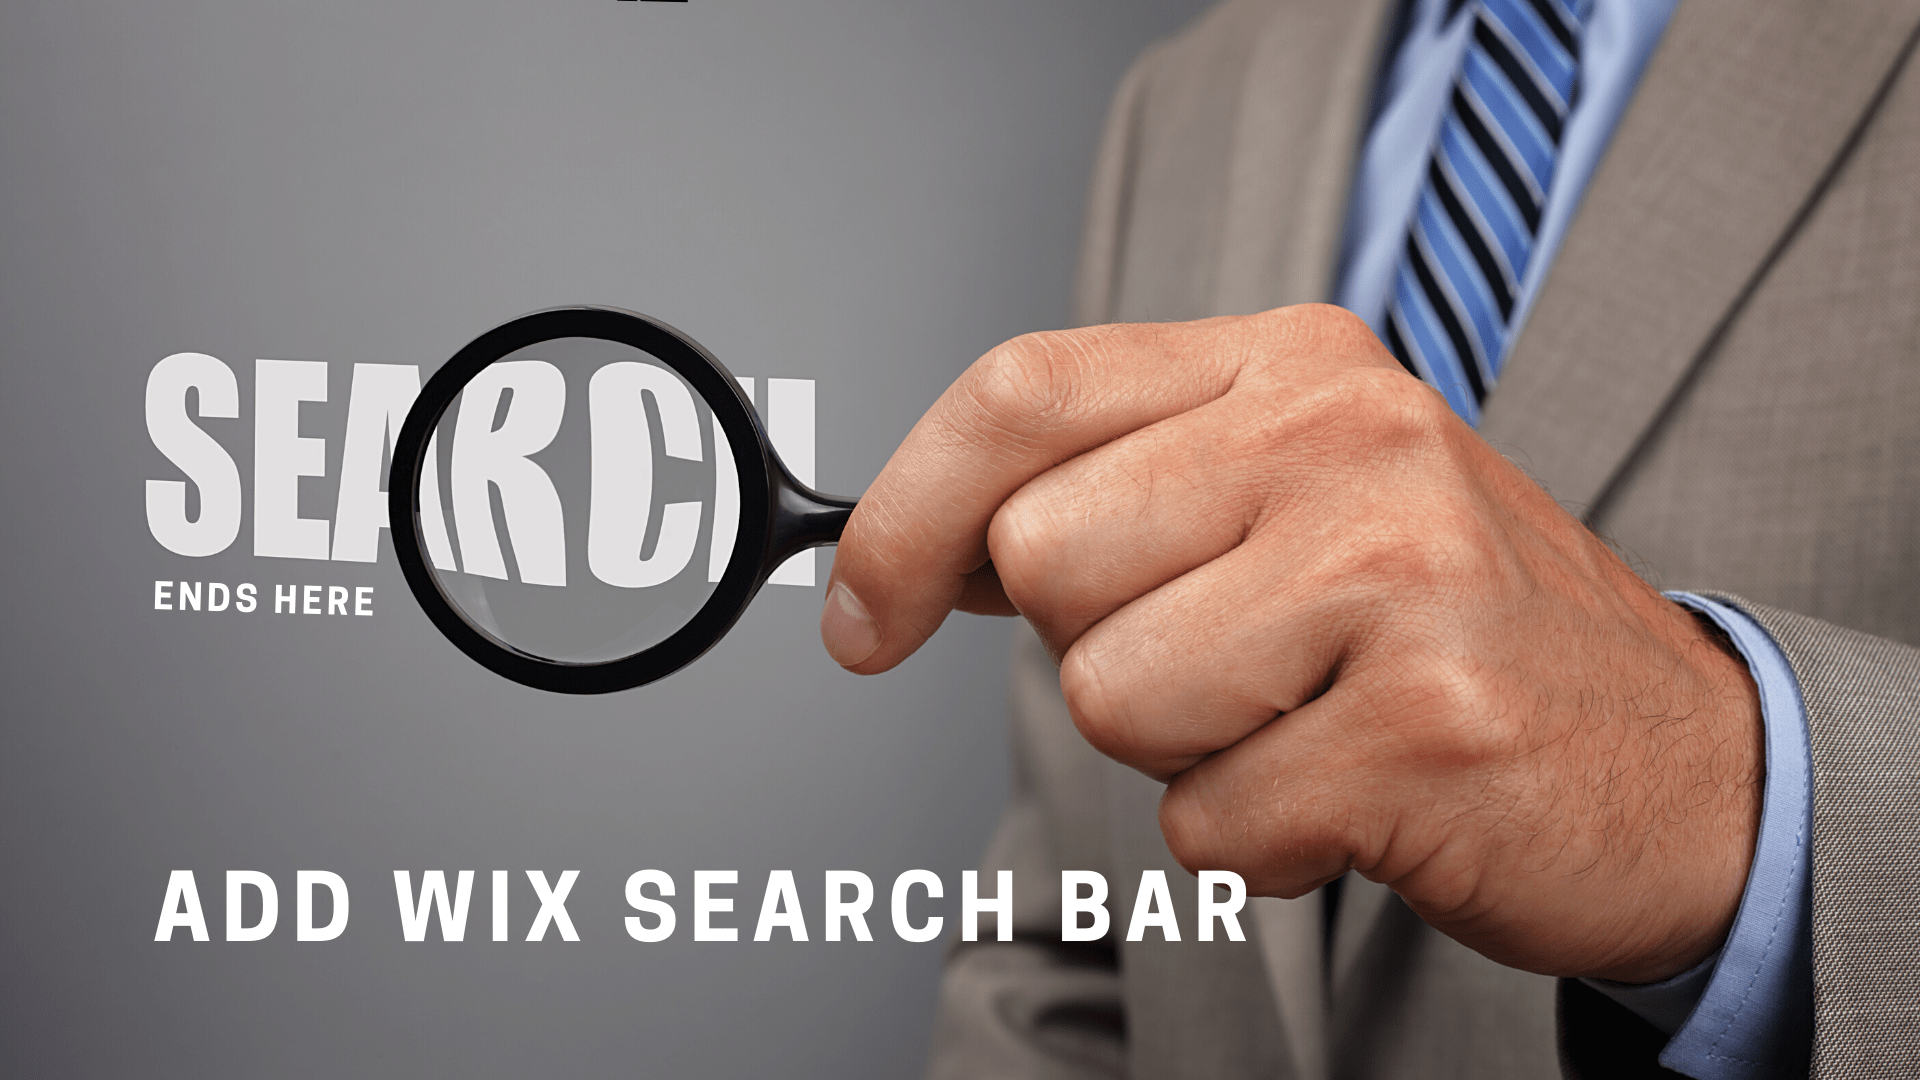 Mini guide on how to add wix search bar in wix site